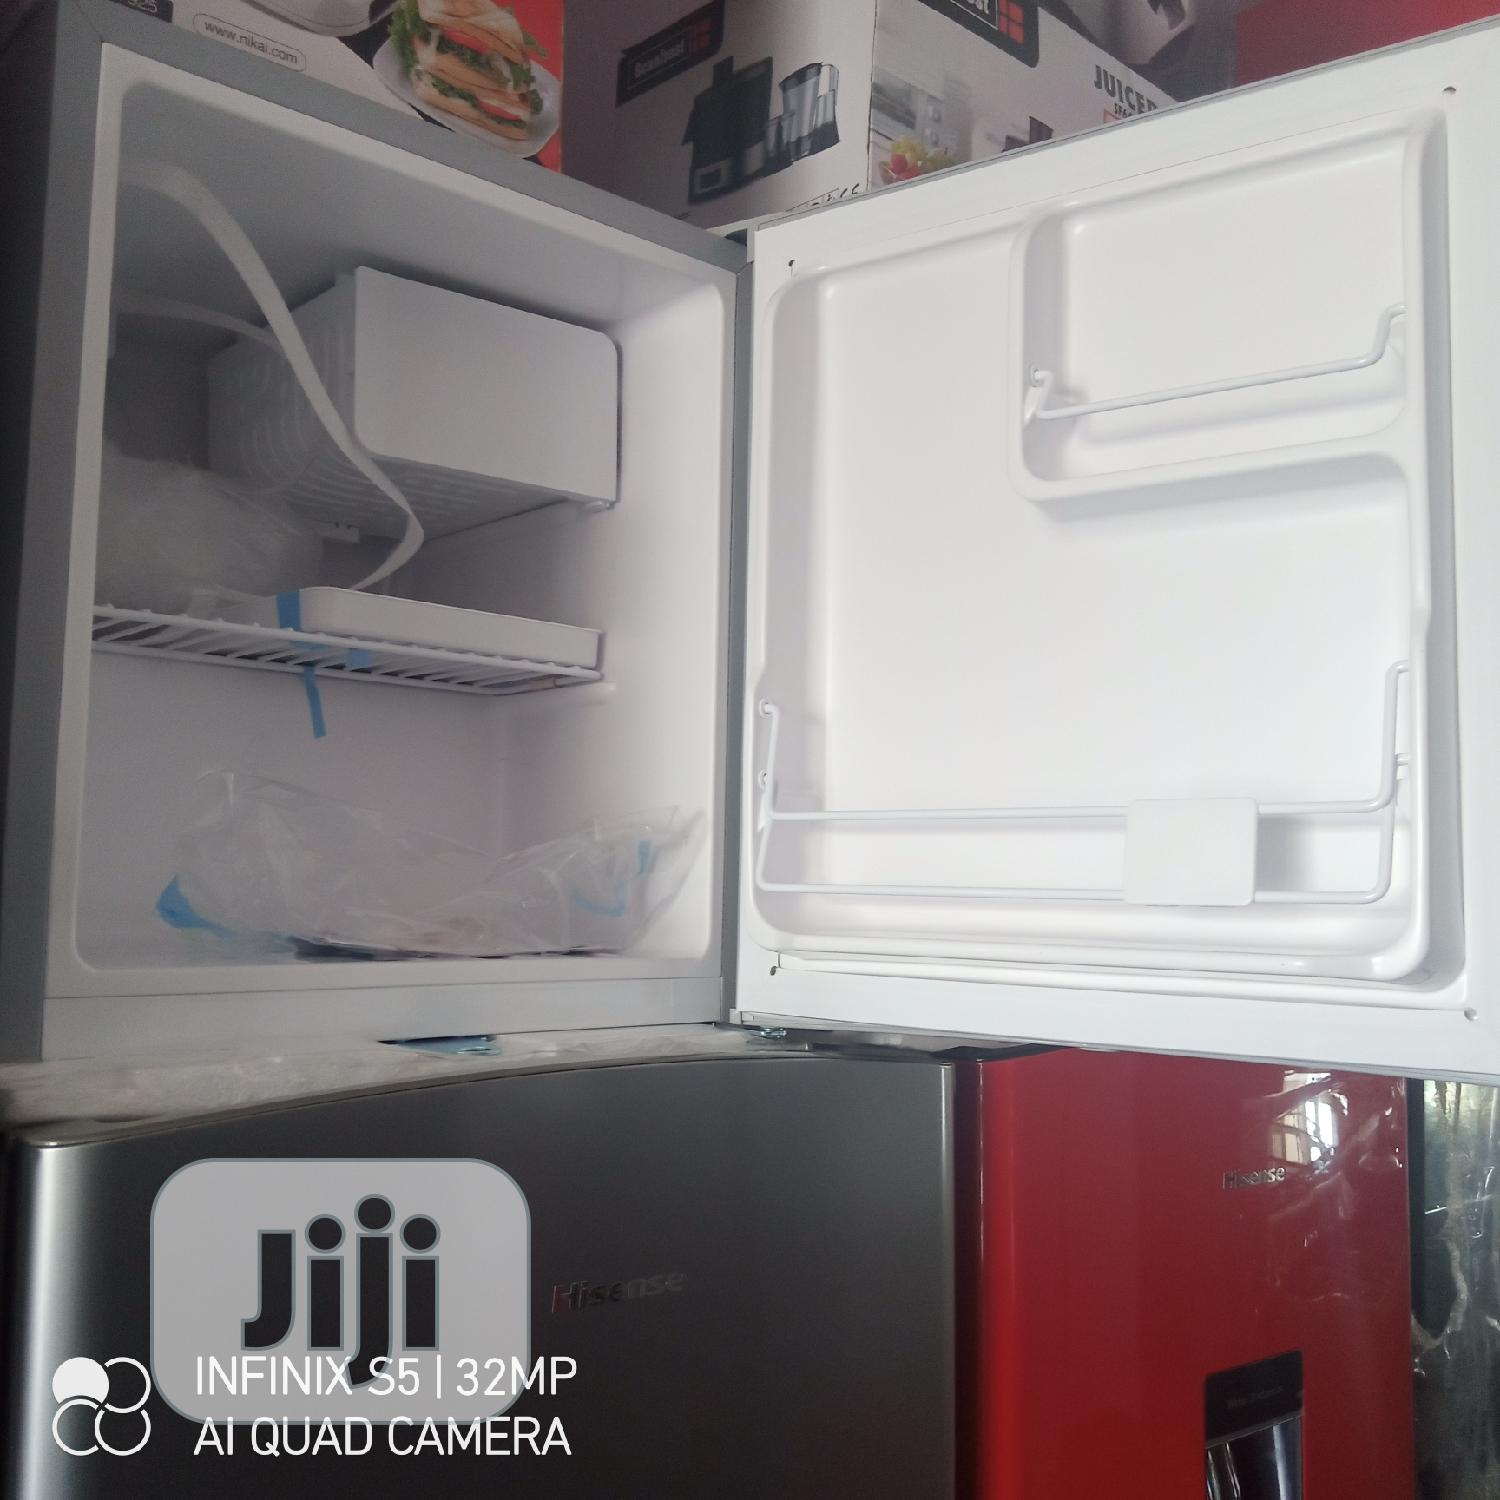 Archive: Synix Refrigerator FD065